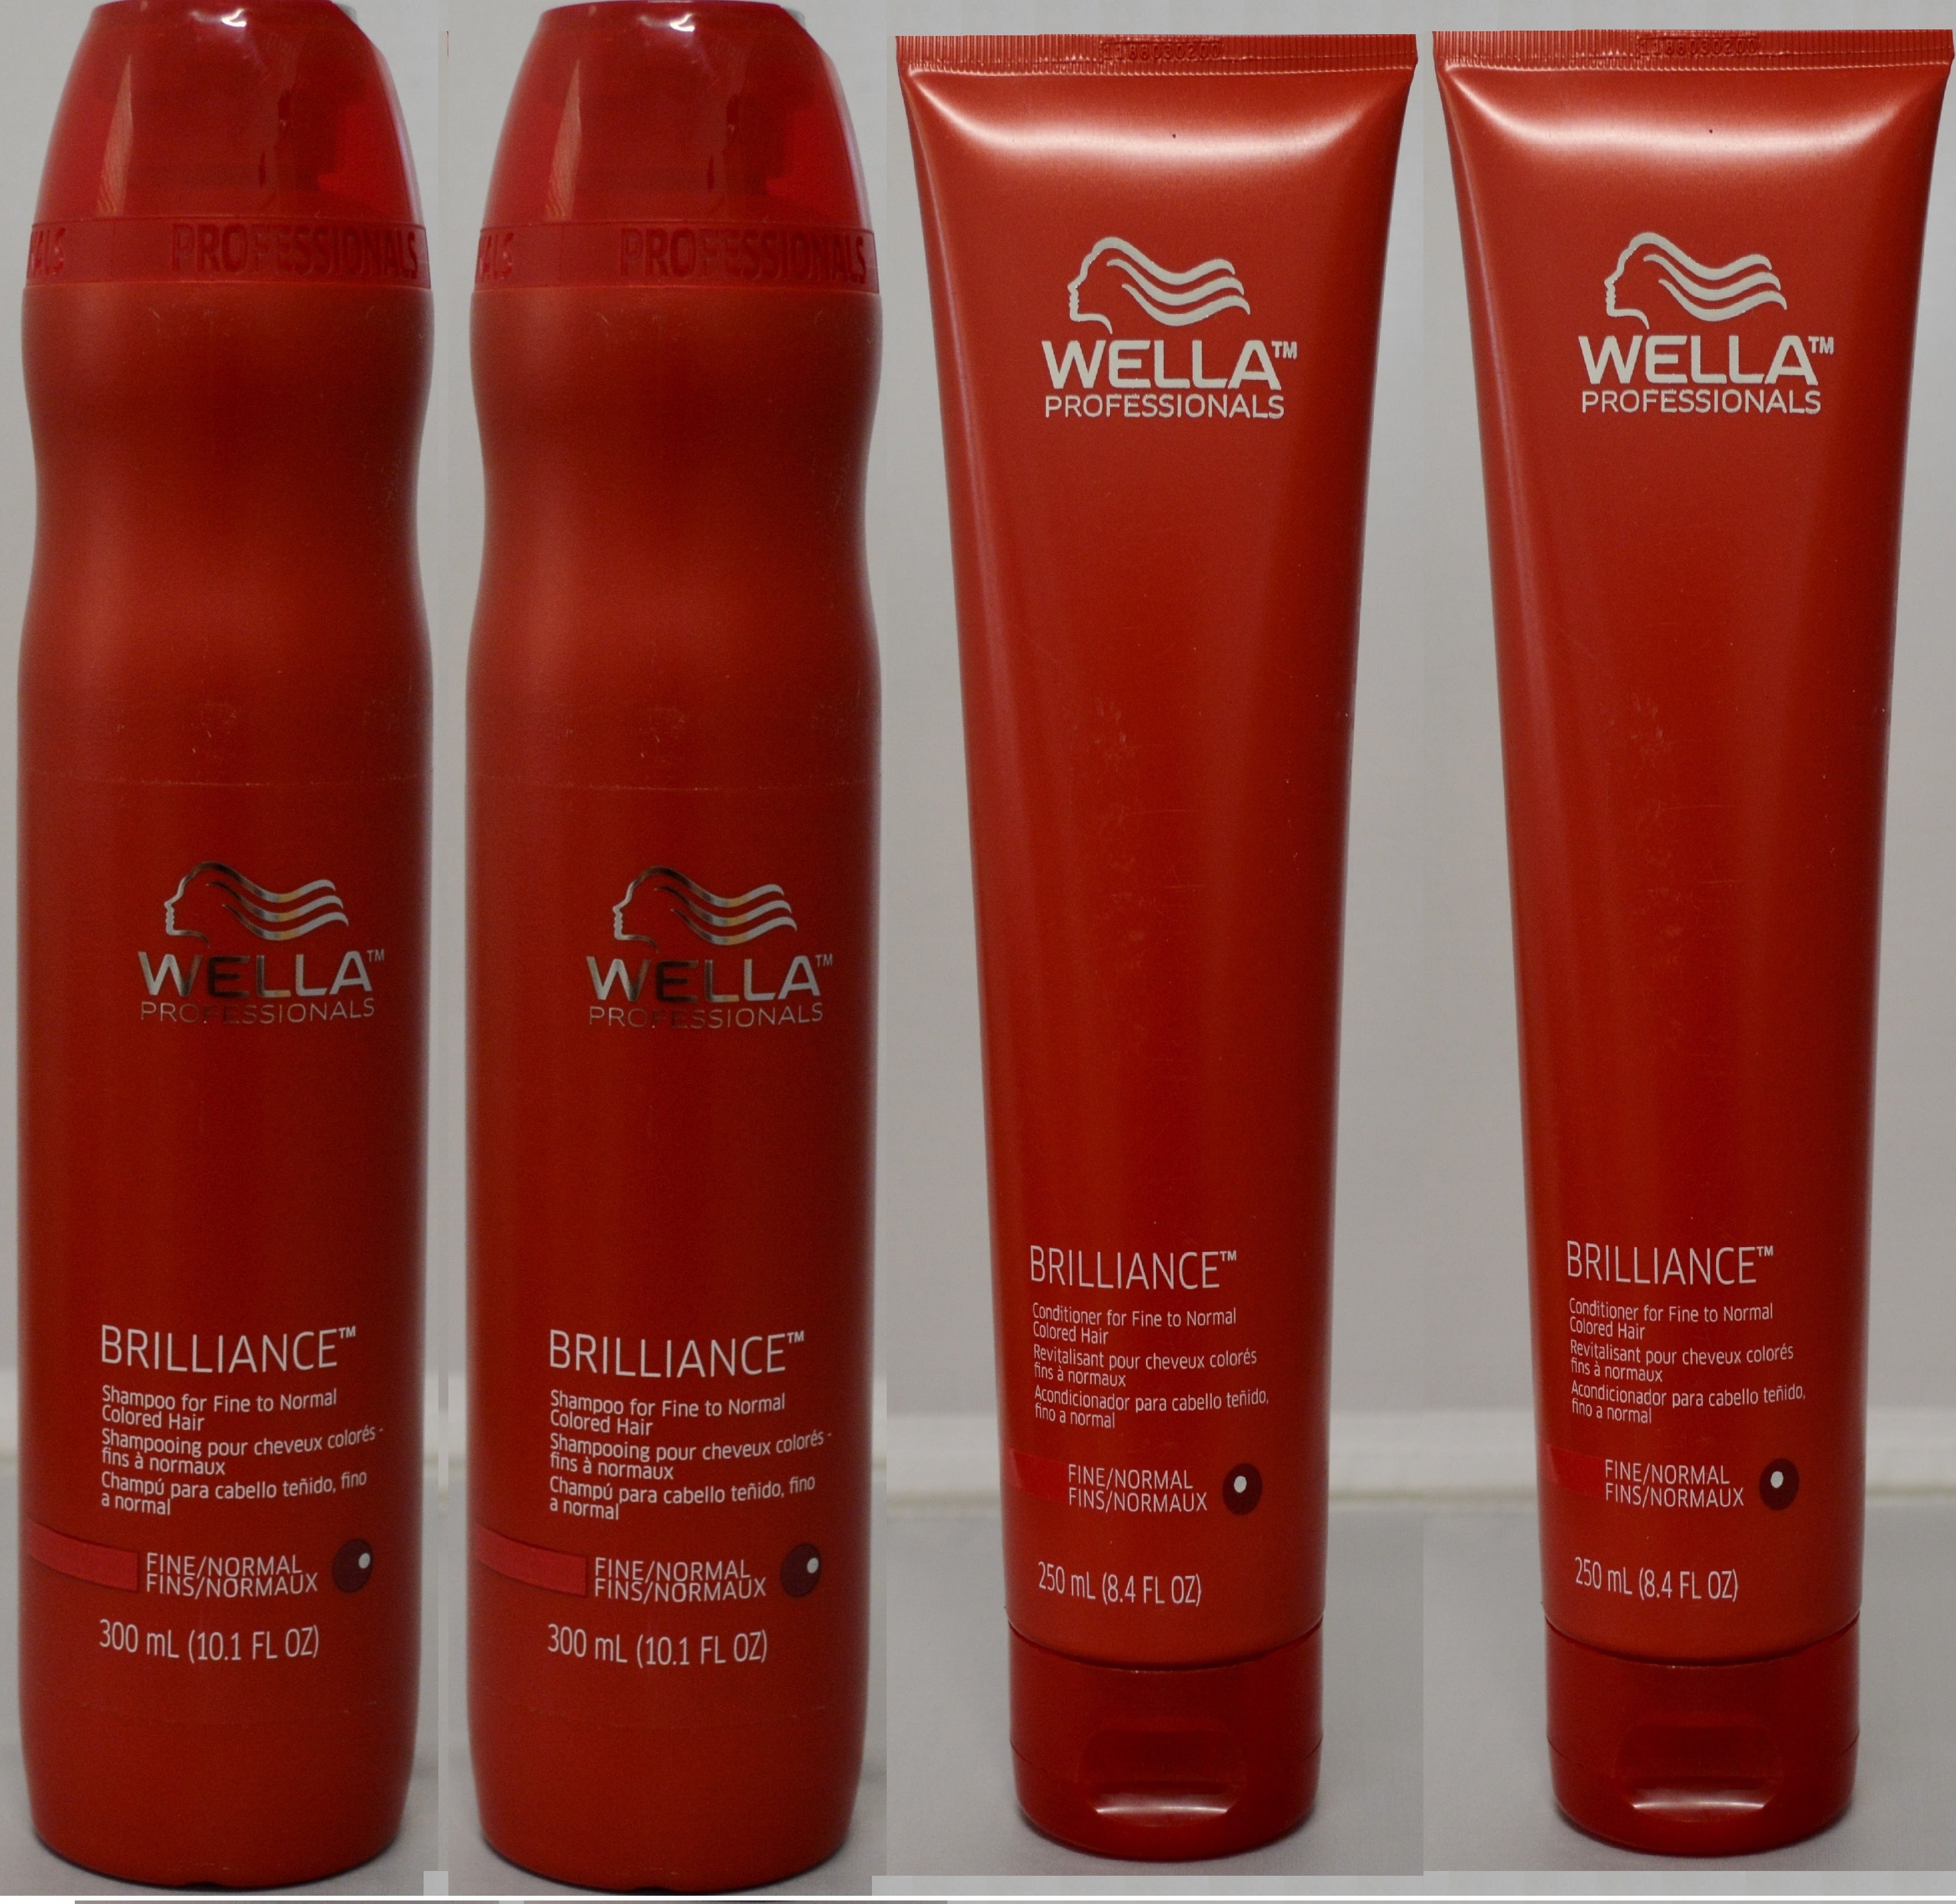 Wella Brilliance Shampoo 10.1oz & Conditioner 8.4oz for Fine to Normal Colored Hair (4 pack)